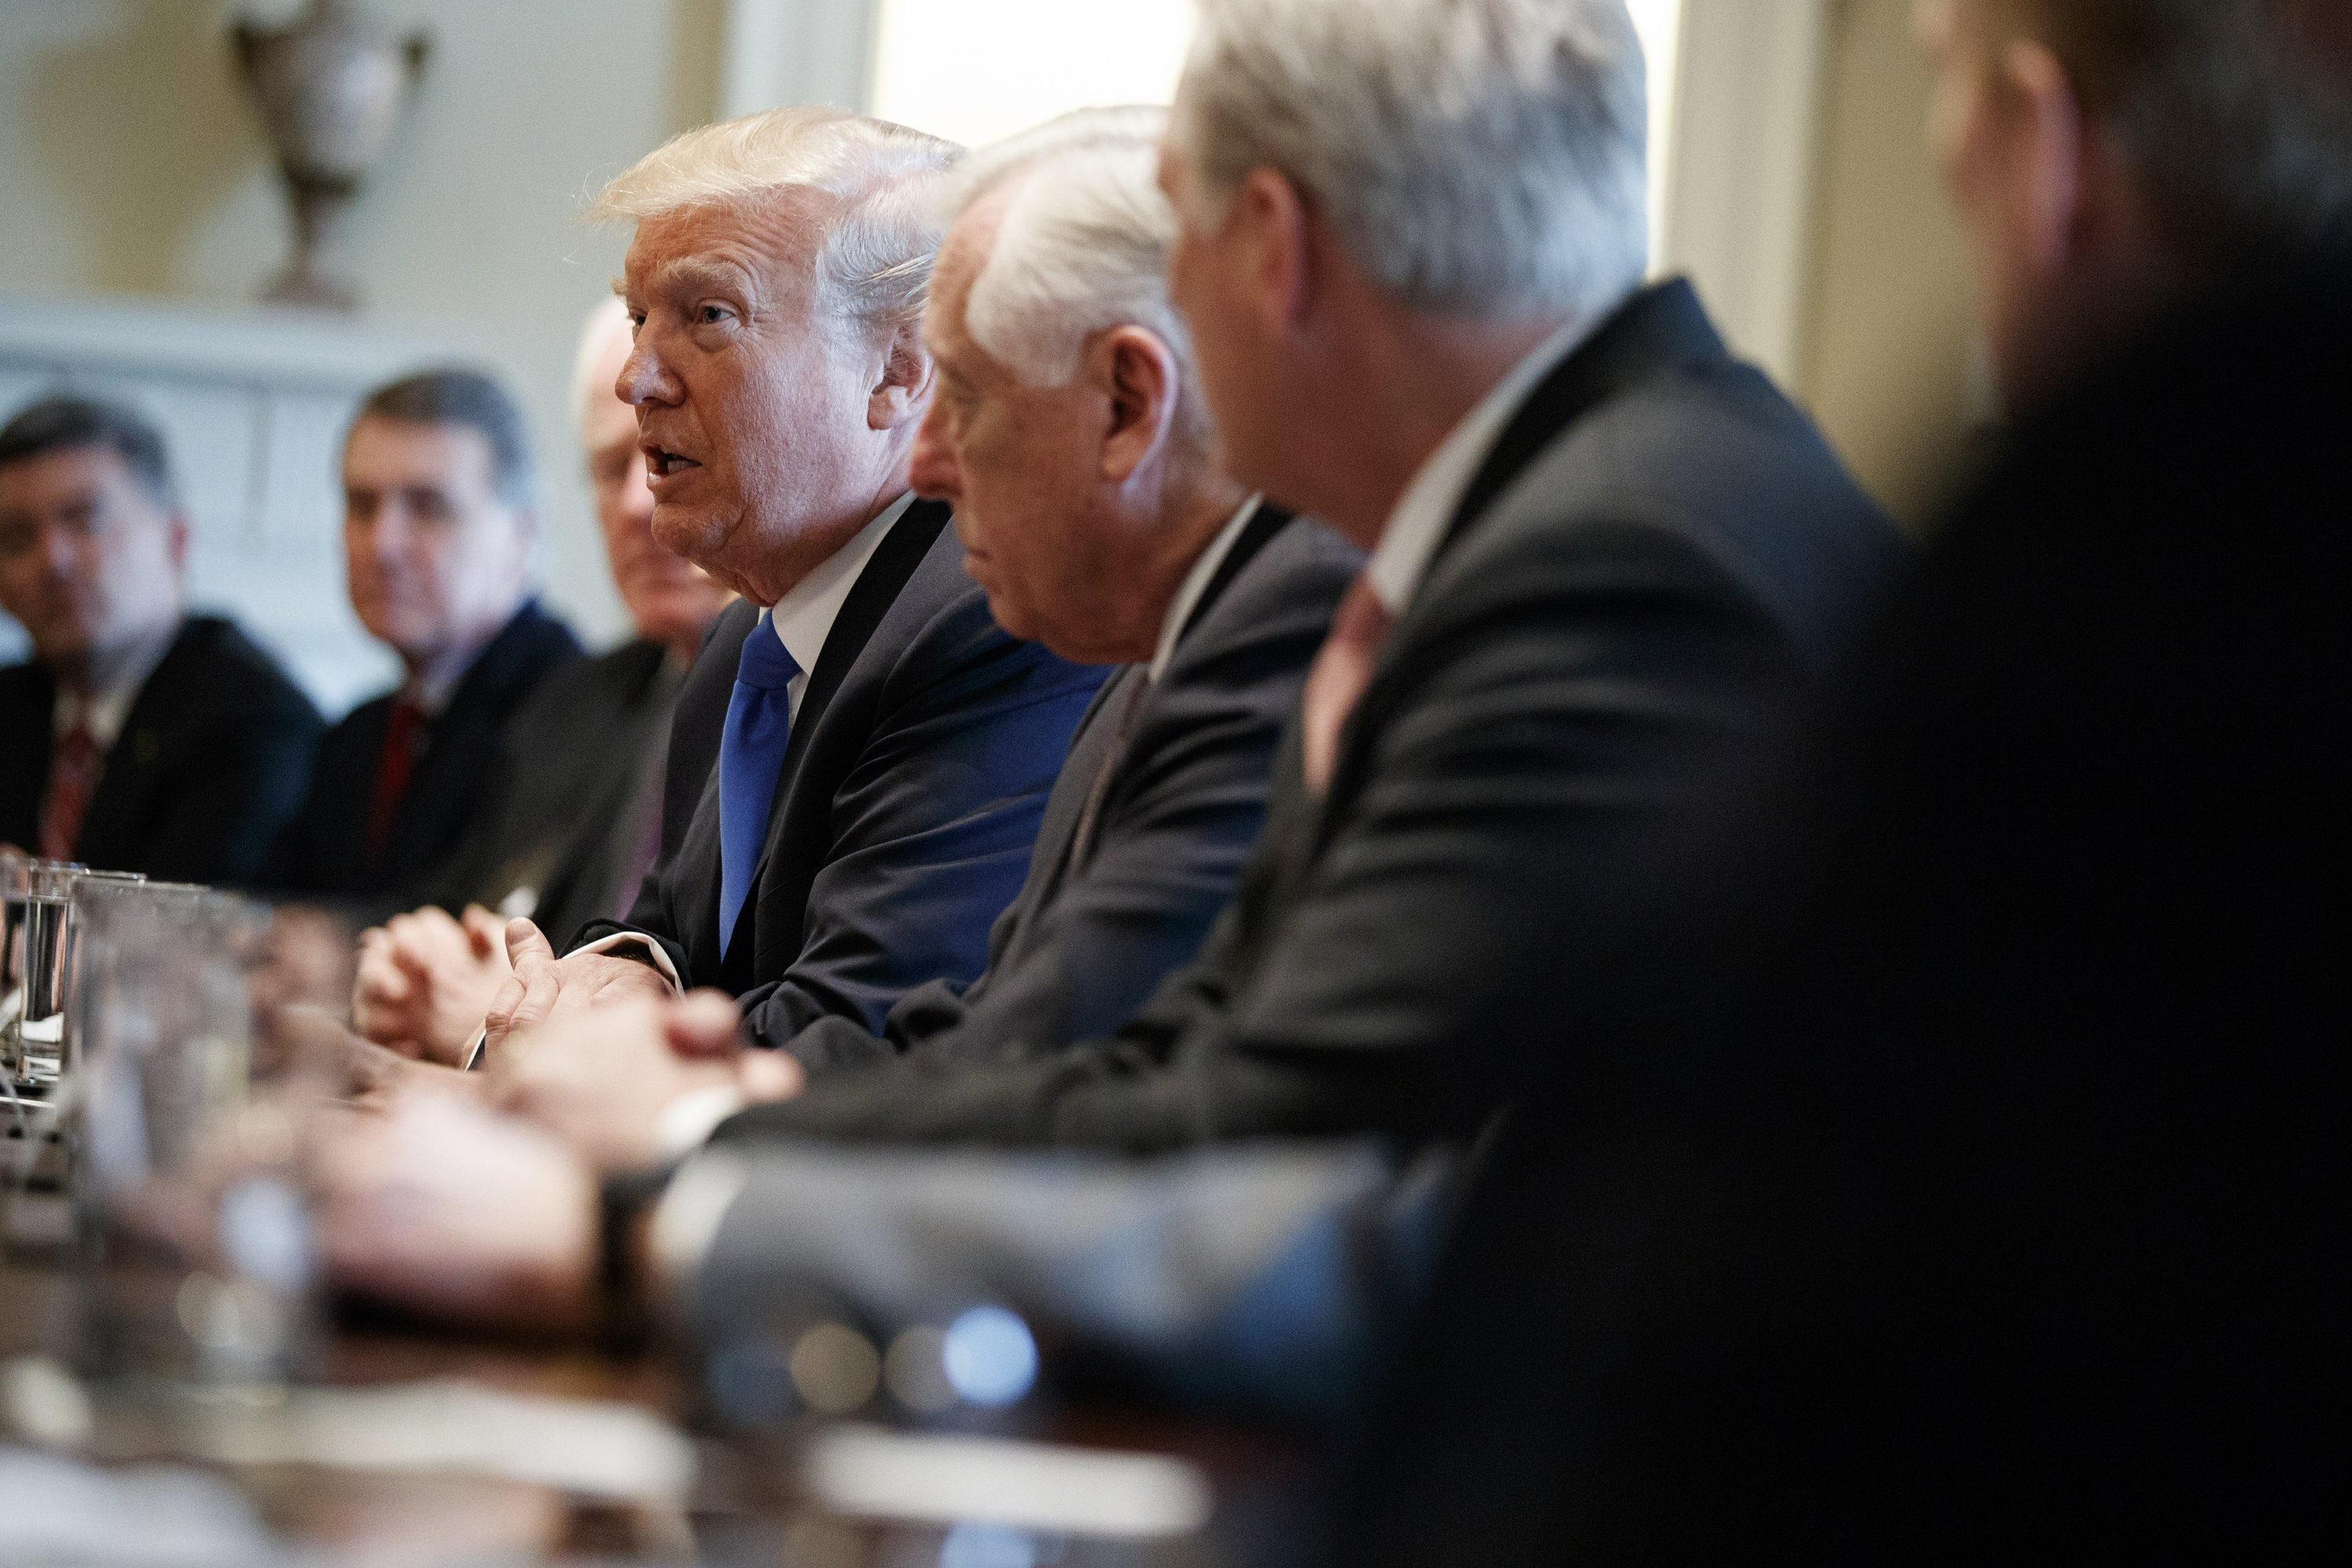 The Latest: Trump suggests 2-phase immigration deal